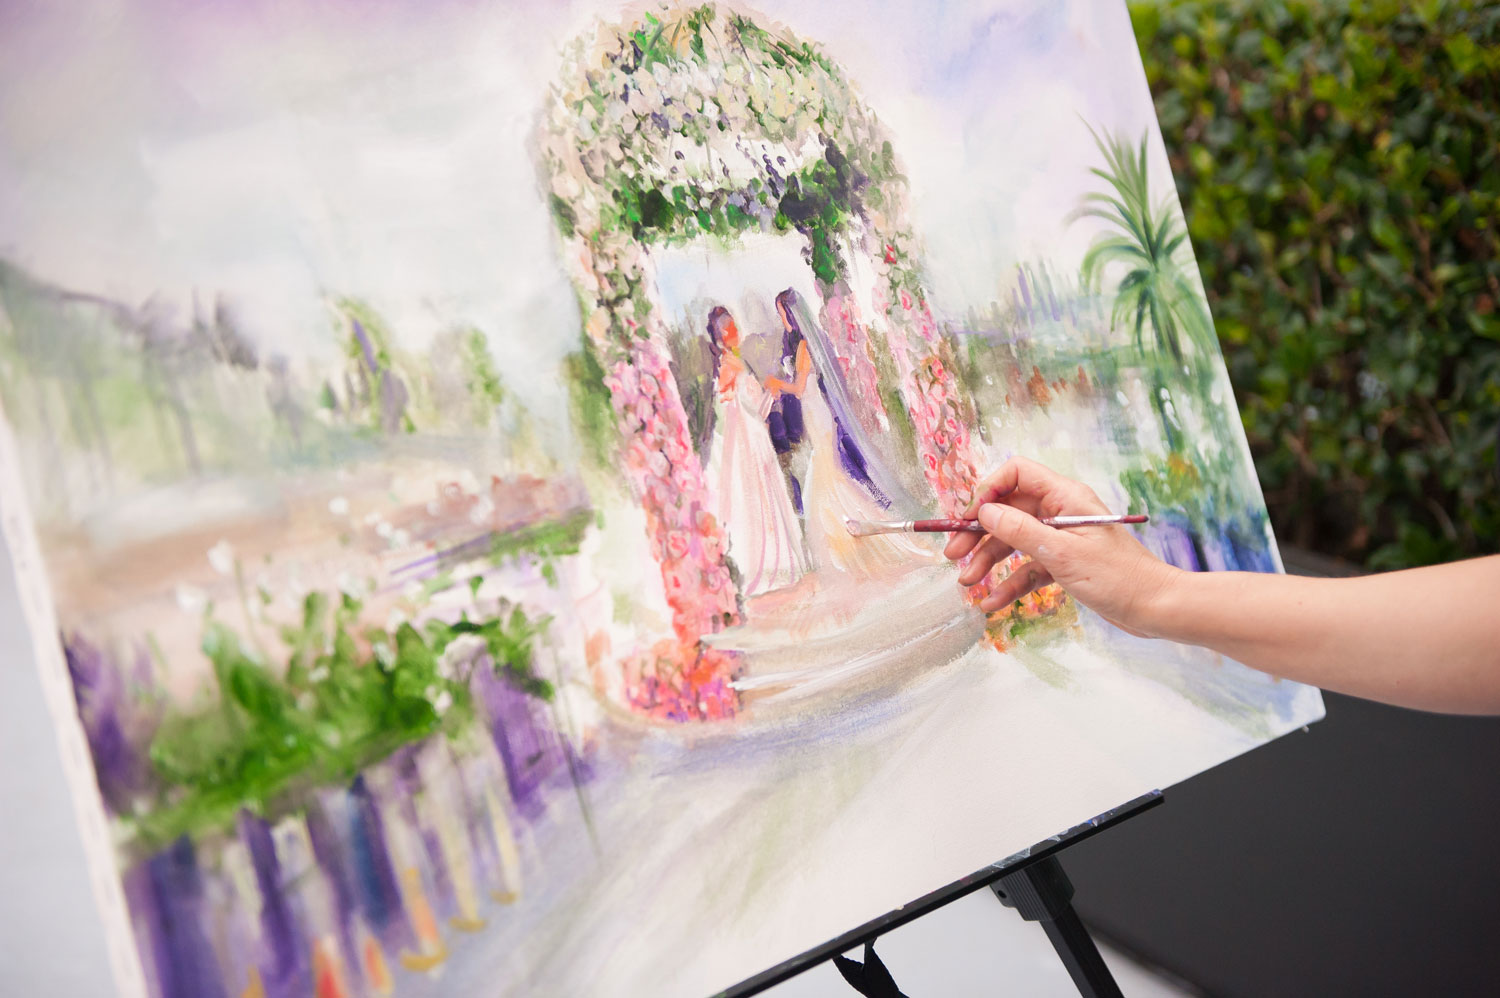 Live event painter painting ceremony decor wedding ideas hand-painted